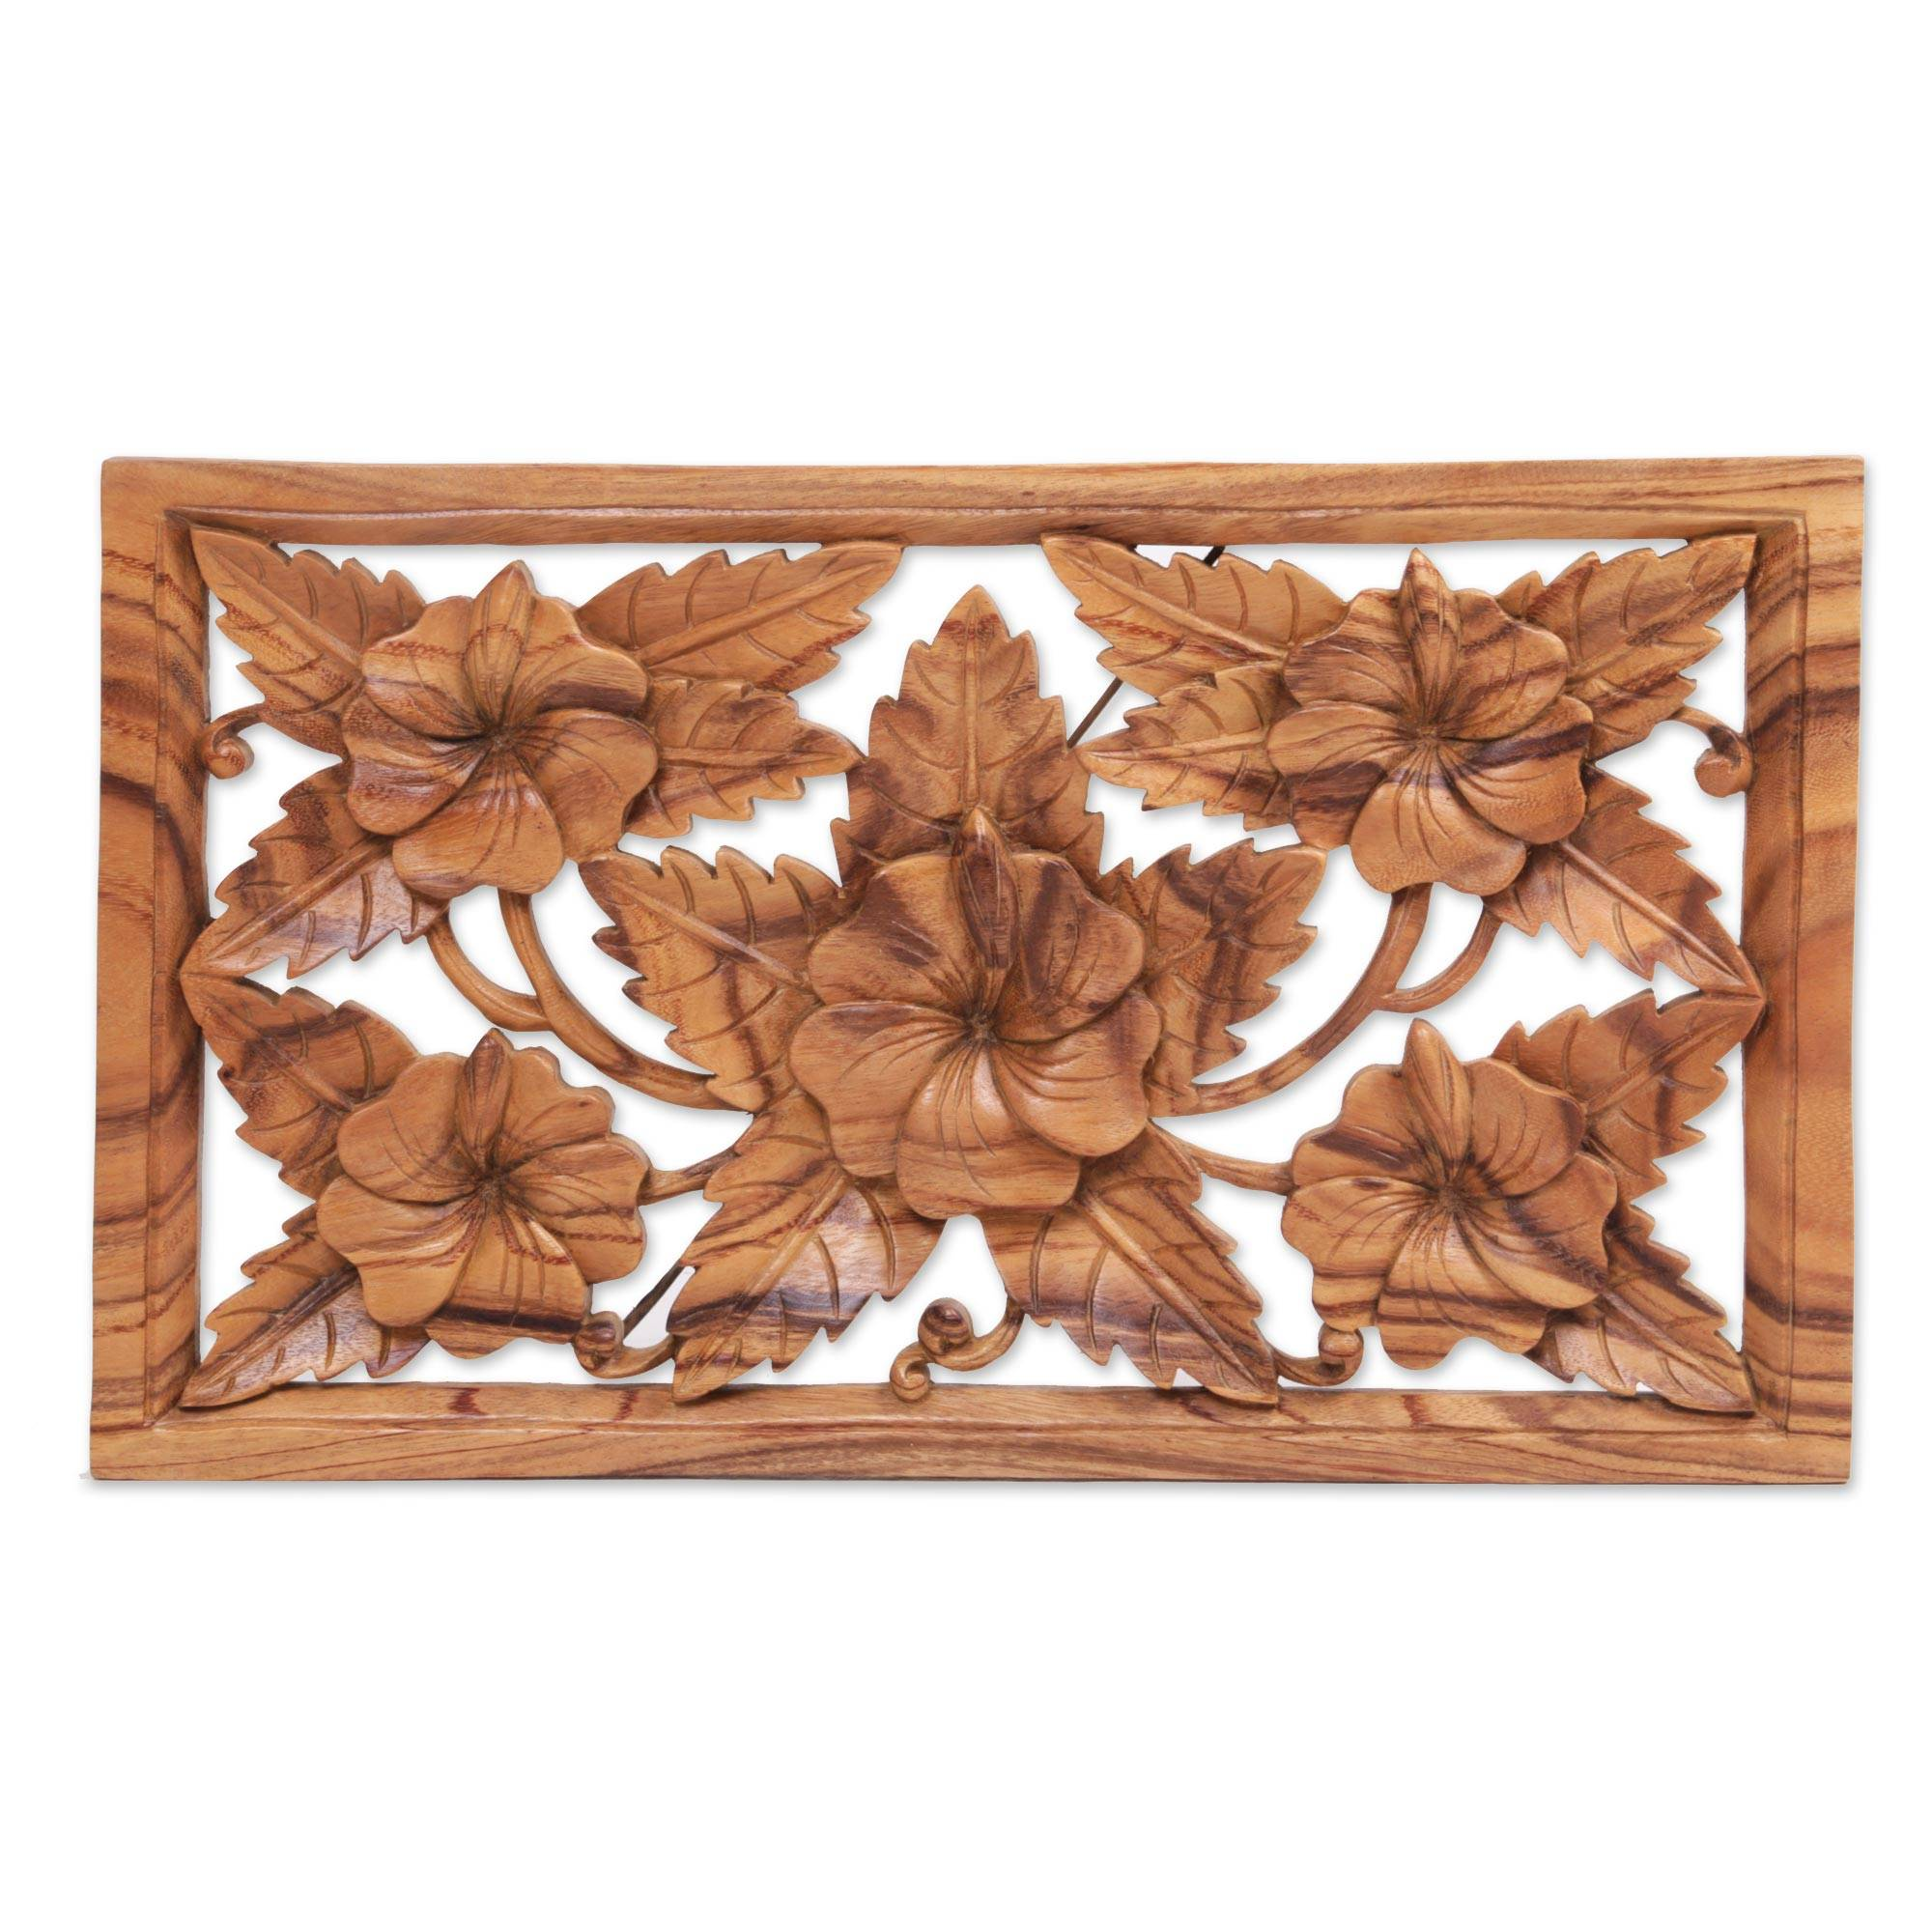 Unicef market hand carved shoe flower wood wall relief panel